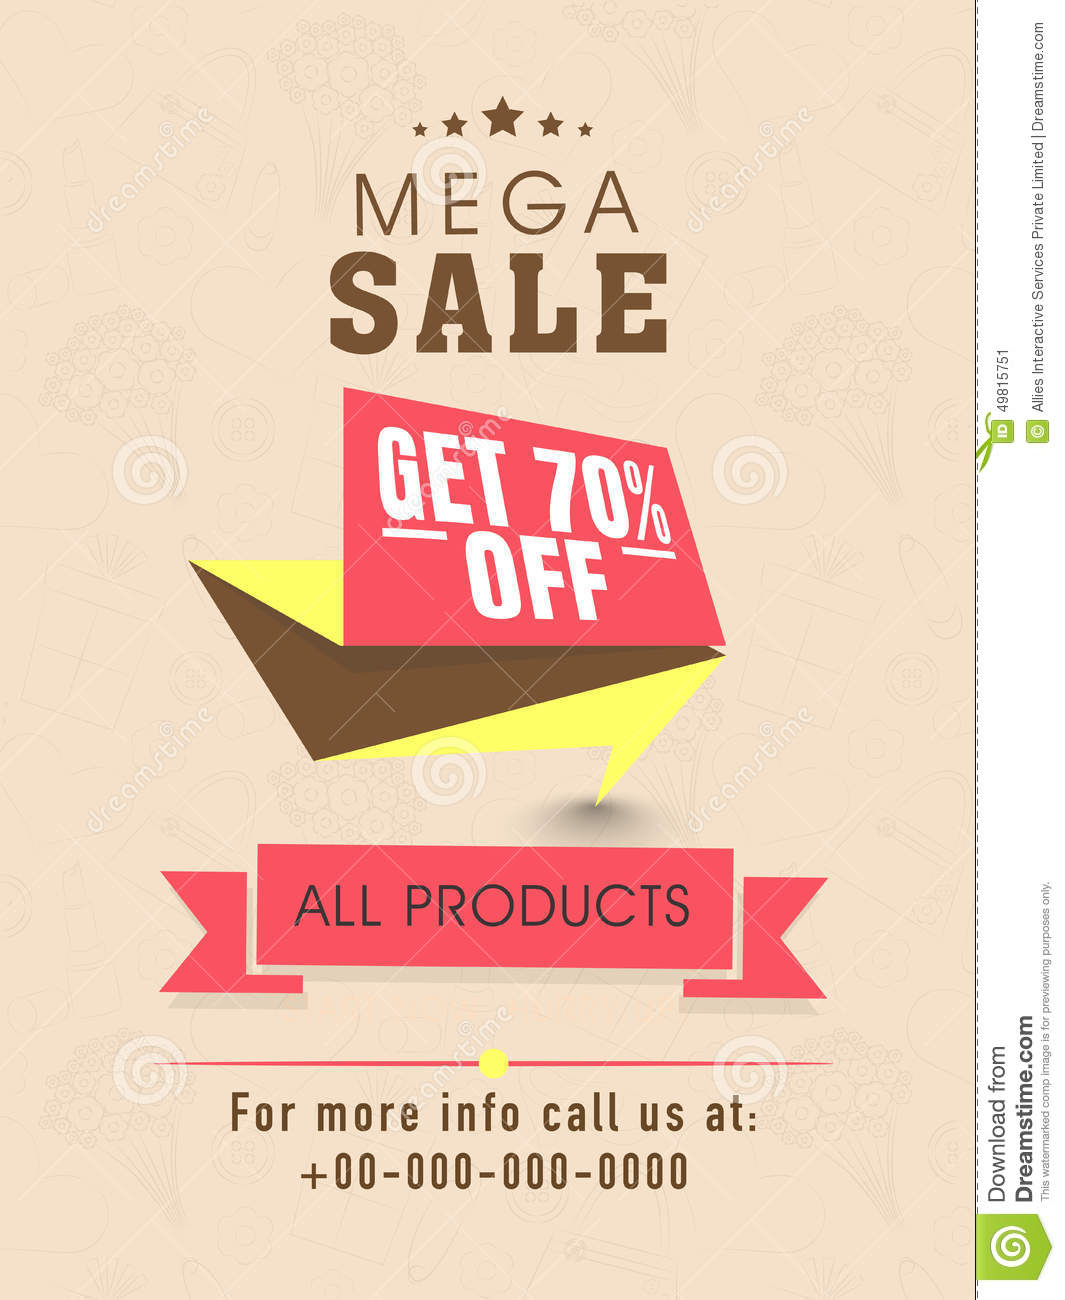 Sale Flyer Banner Or Template Design Illustration Image – Sale Flyer Design